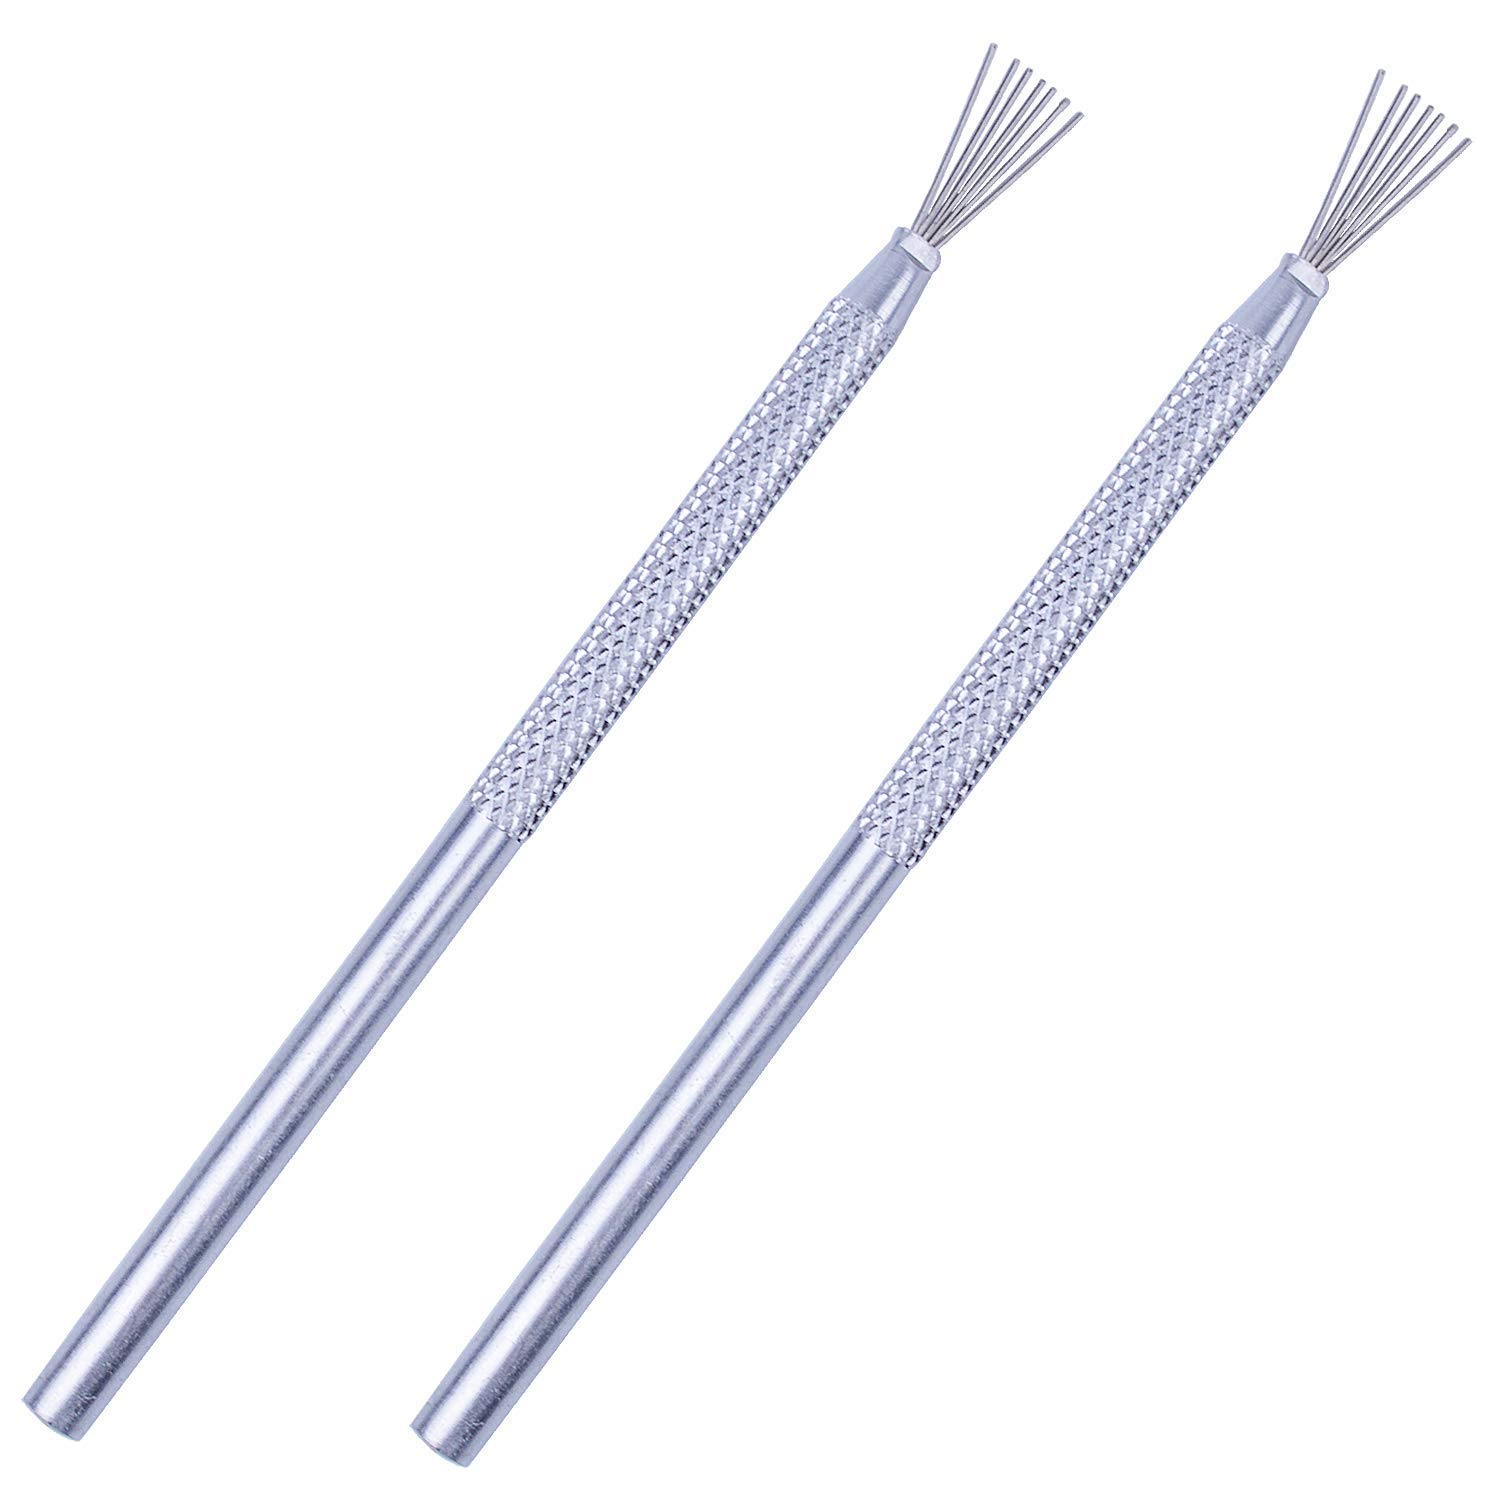 BronaGrand 2pcs Feather Wire Texture Tool for Clay Sculpting Texturing Modeling Tools